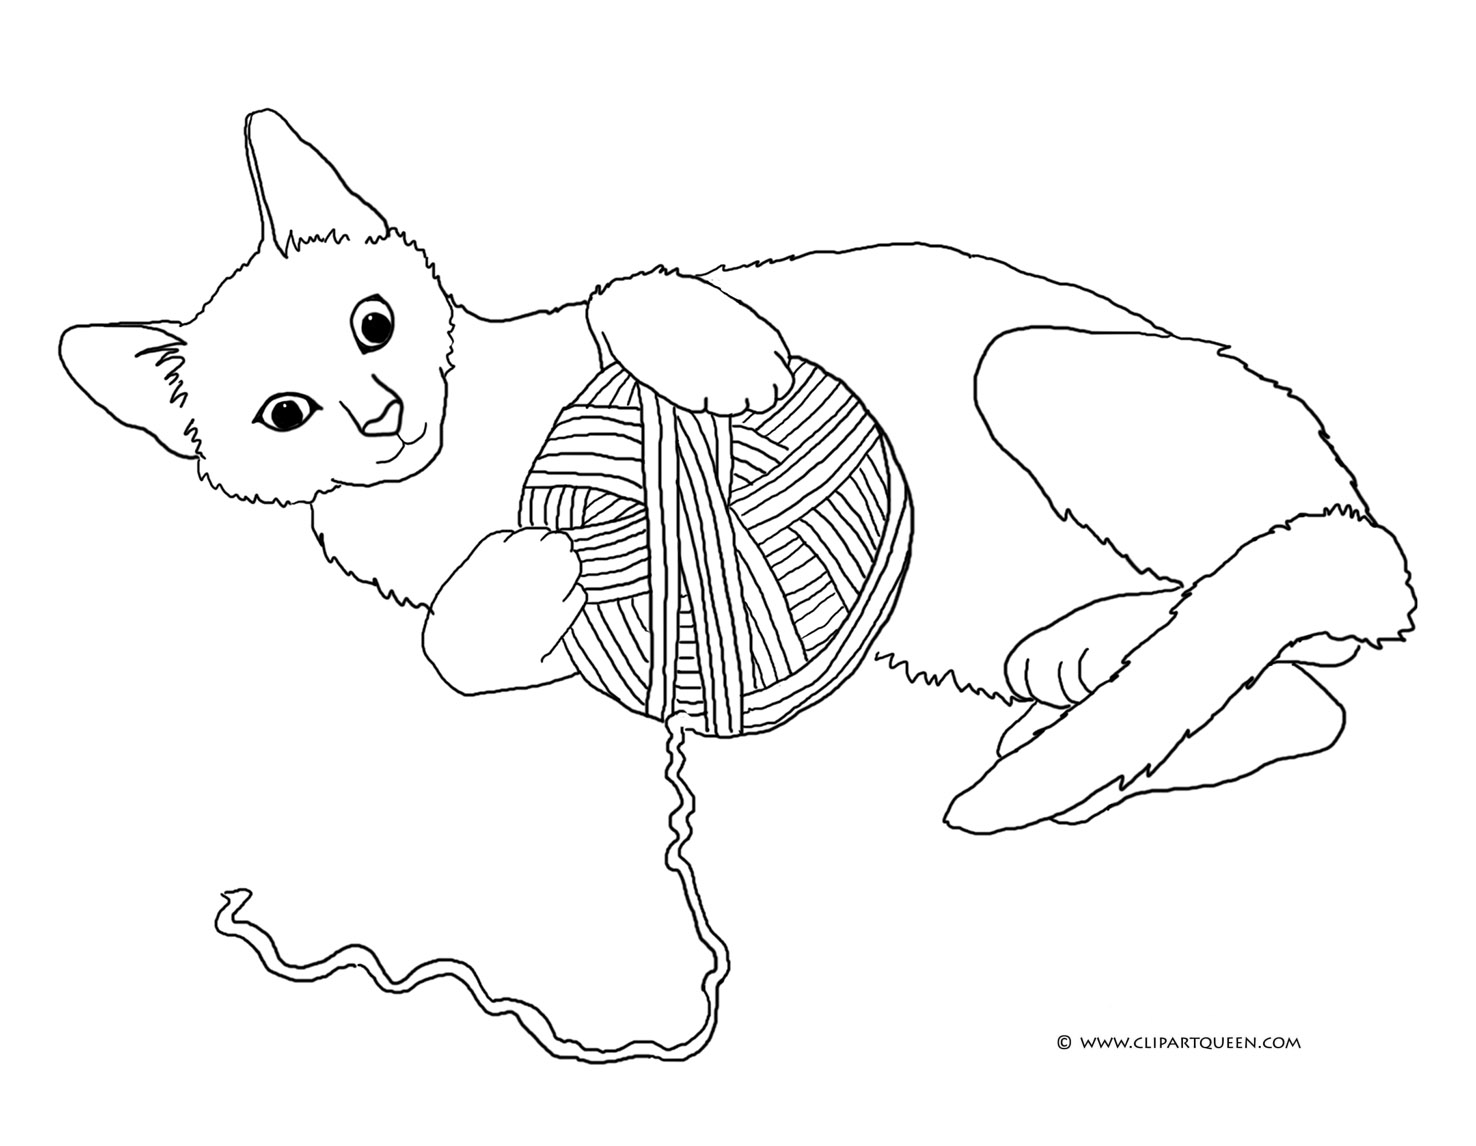 yarn coloring pages - HD1476×1146